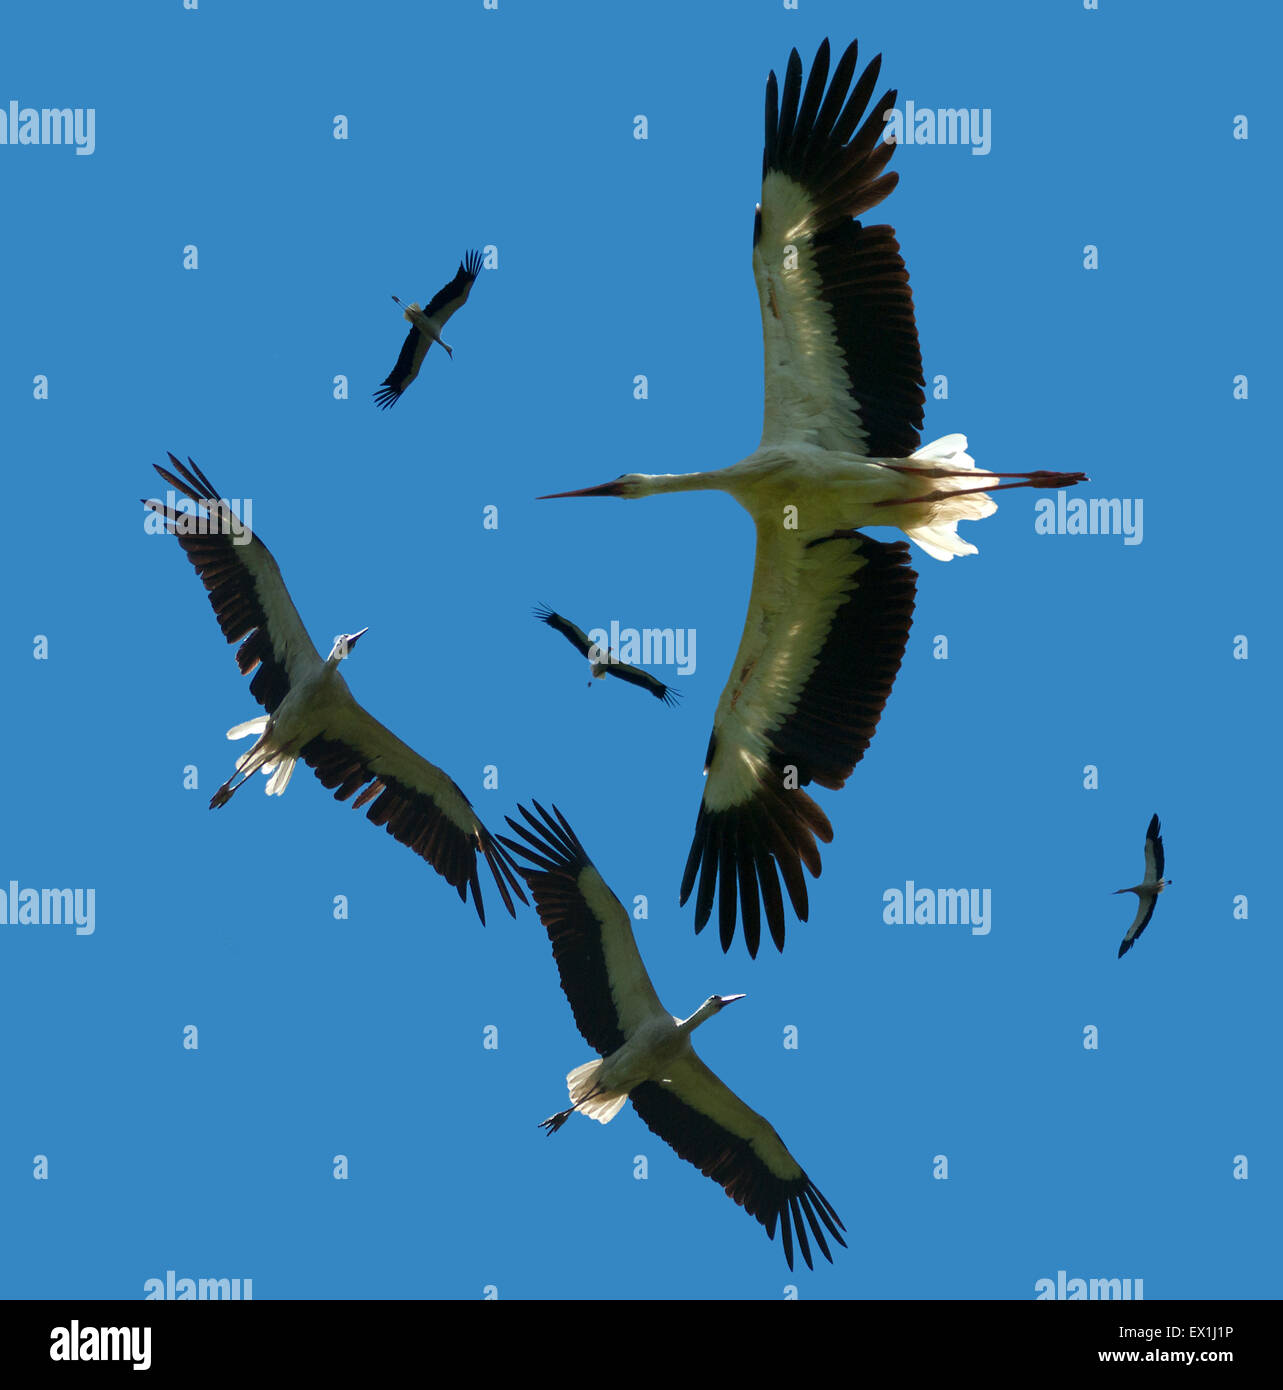 A flock of white storks flying in the sky with clouds (Ciconia ciconia). Stock Photo